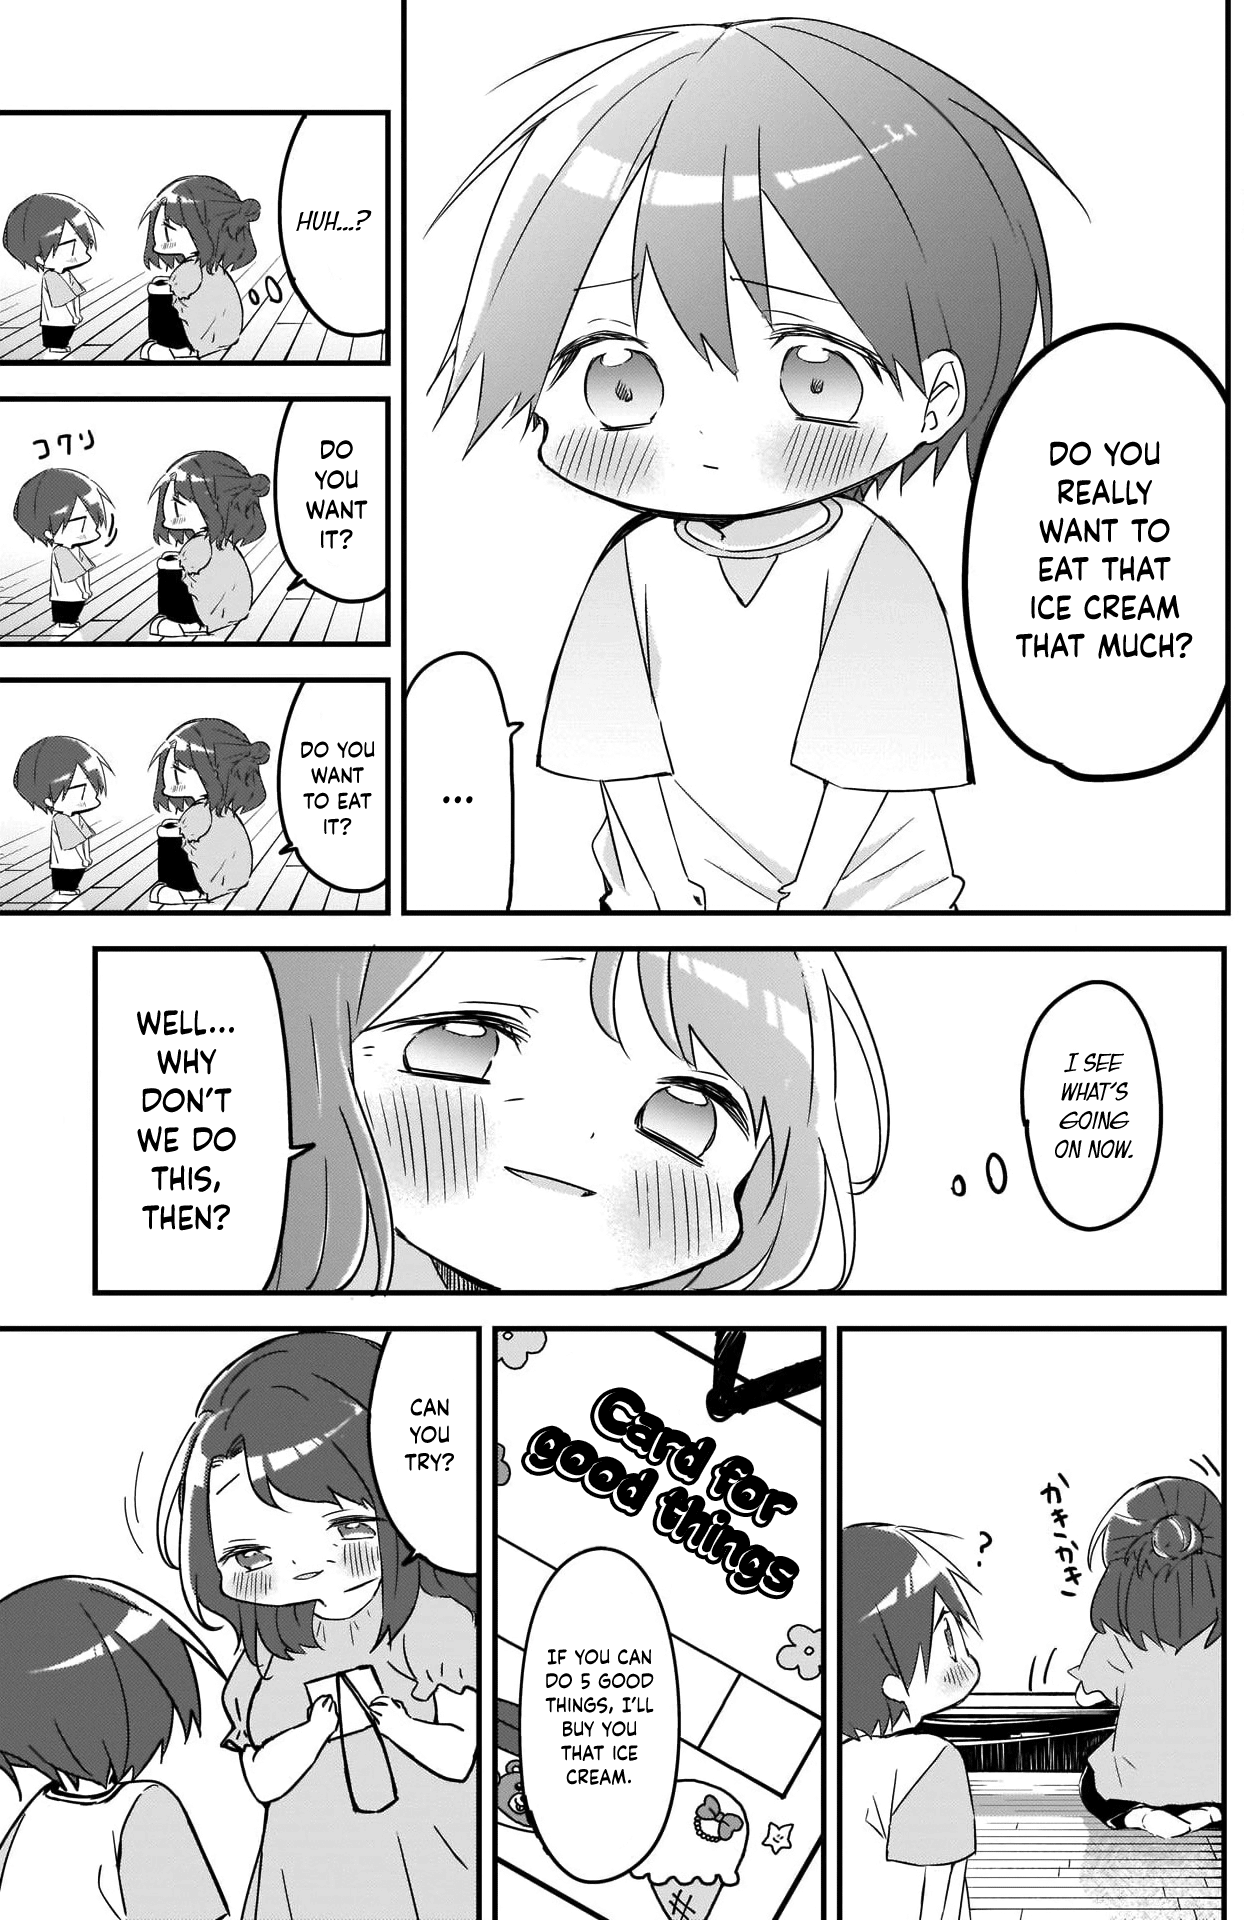 Kubo-san Doesn't Leave Me Be (a Mob) - chapter 77 - #3